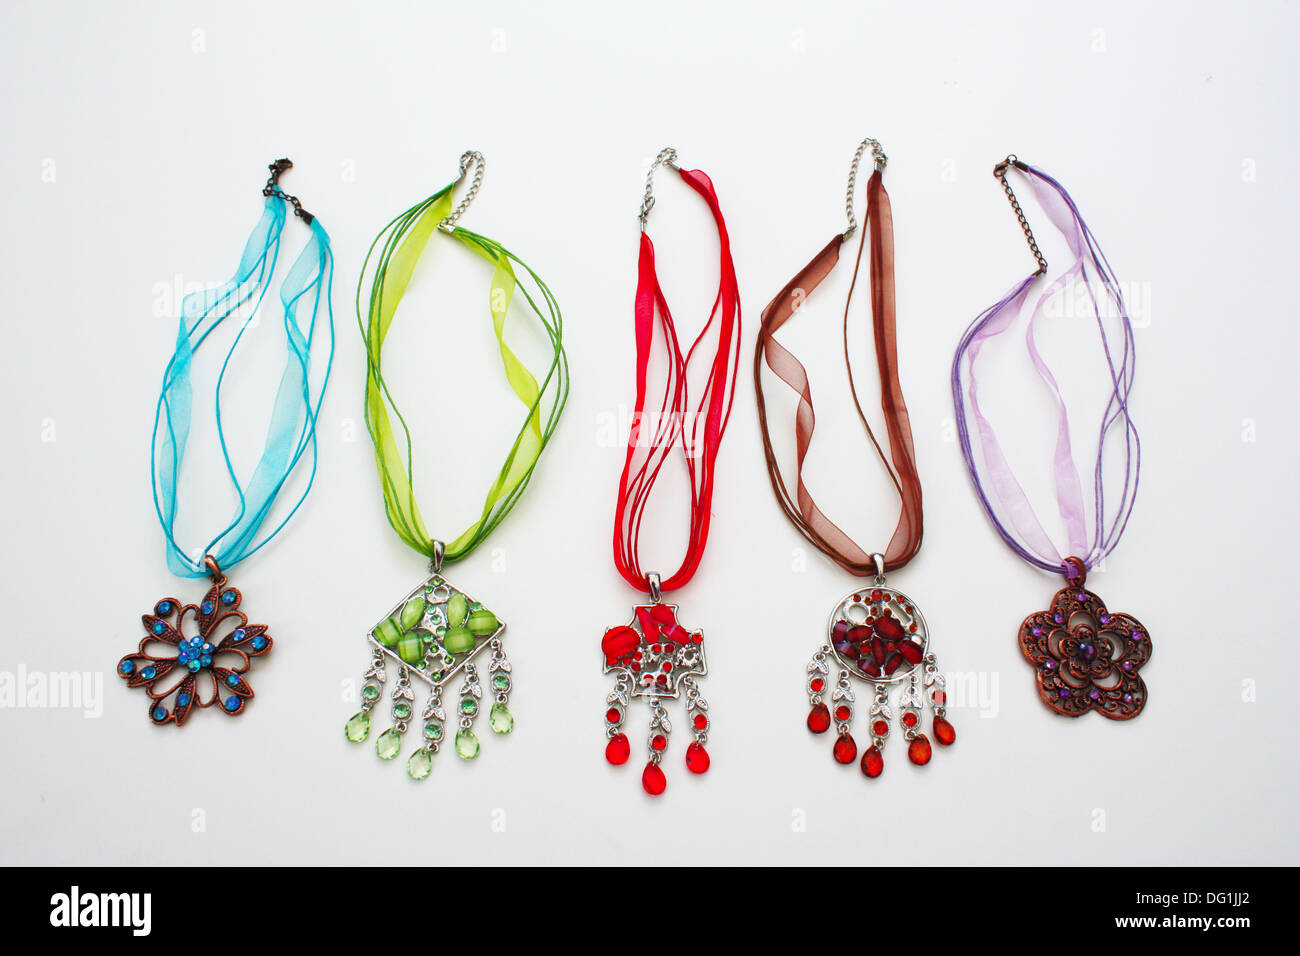 Colorful gem stones jewelry necklaces Stock Photo